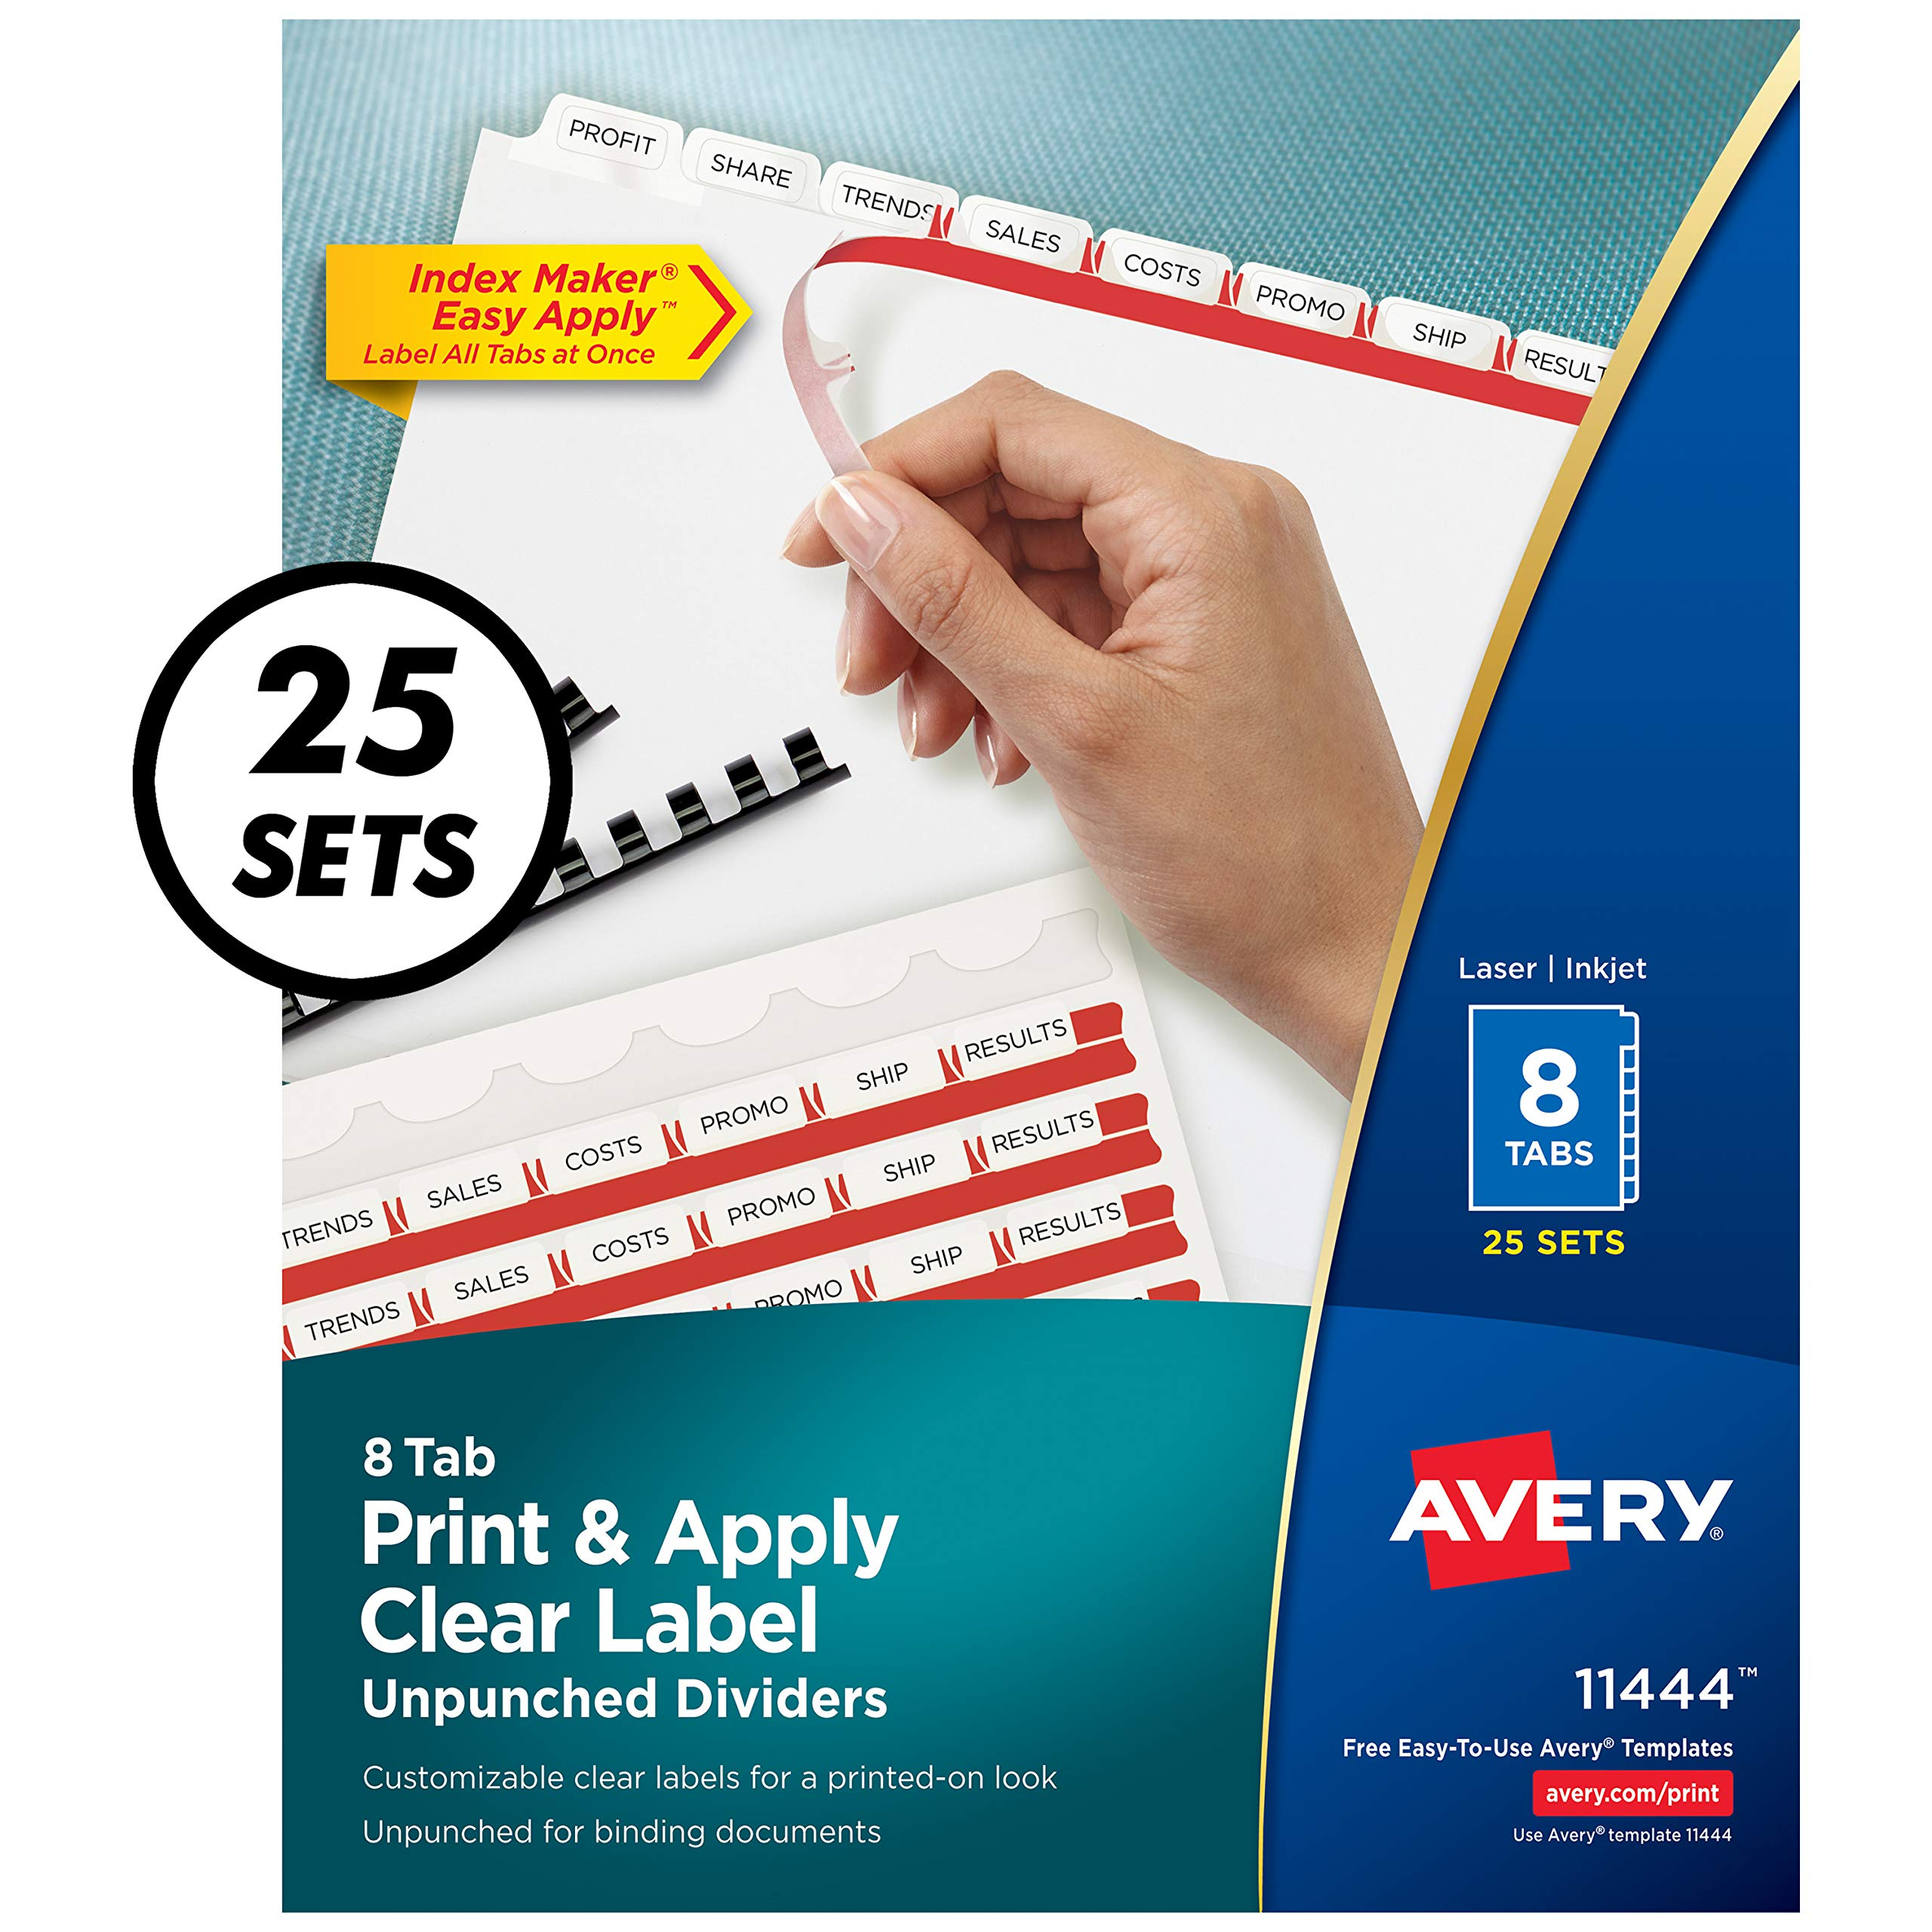 Avery 8-Tab Unpunched Binder Dividers, Easy Print & Apply Clear Label Strip, Index Maker, White Tabs, 25 Sets (11444) by Avery